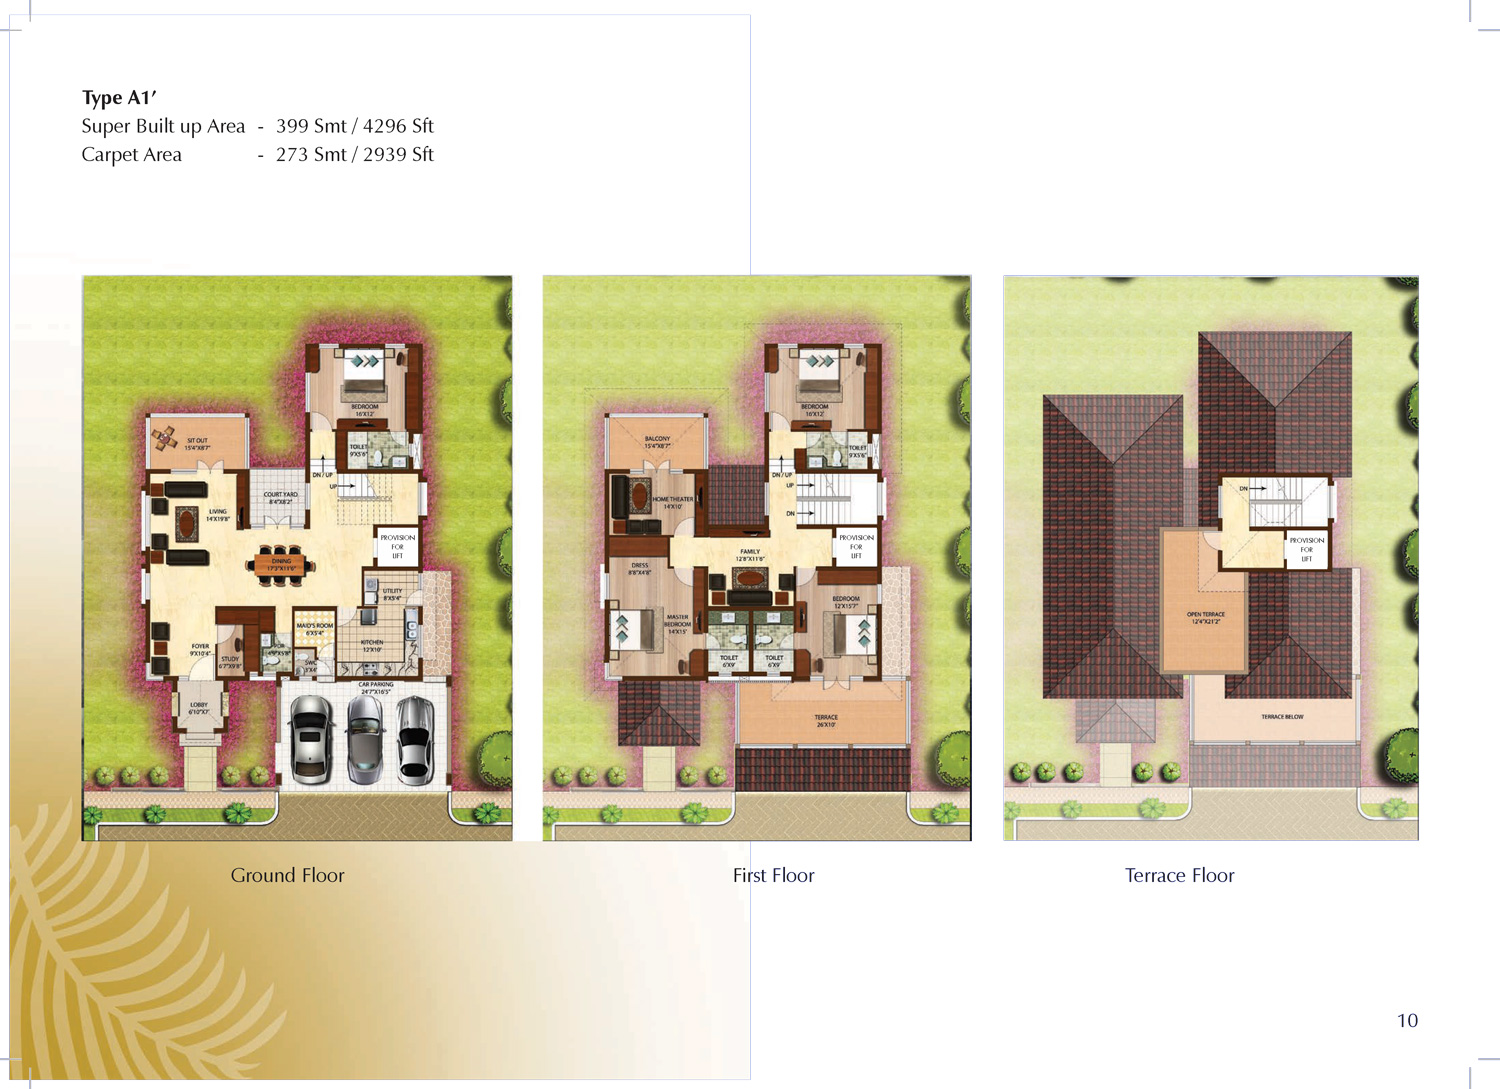 Type A1' - 4296 Sq Ft